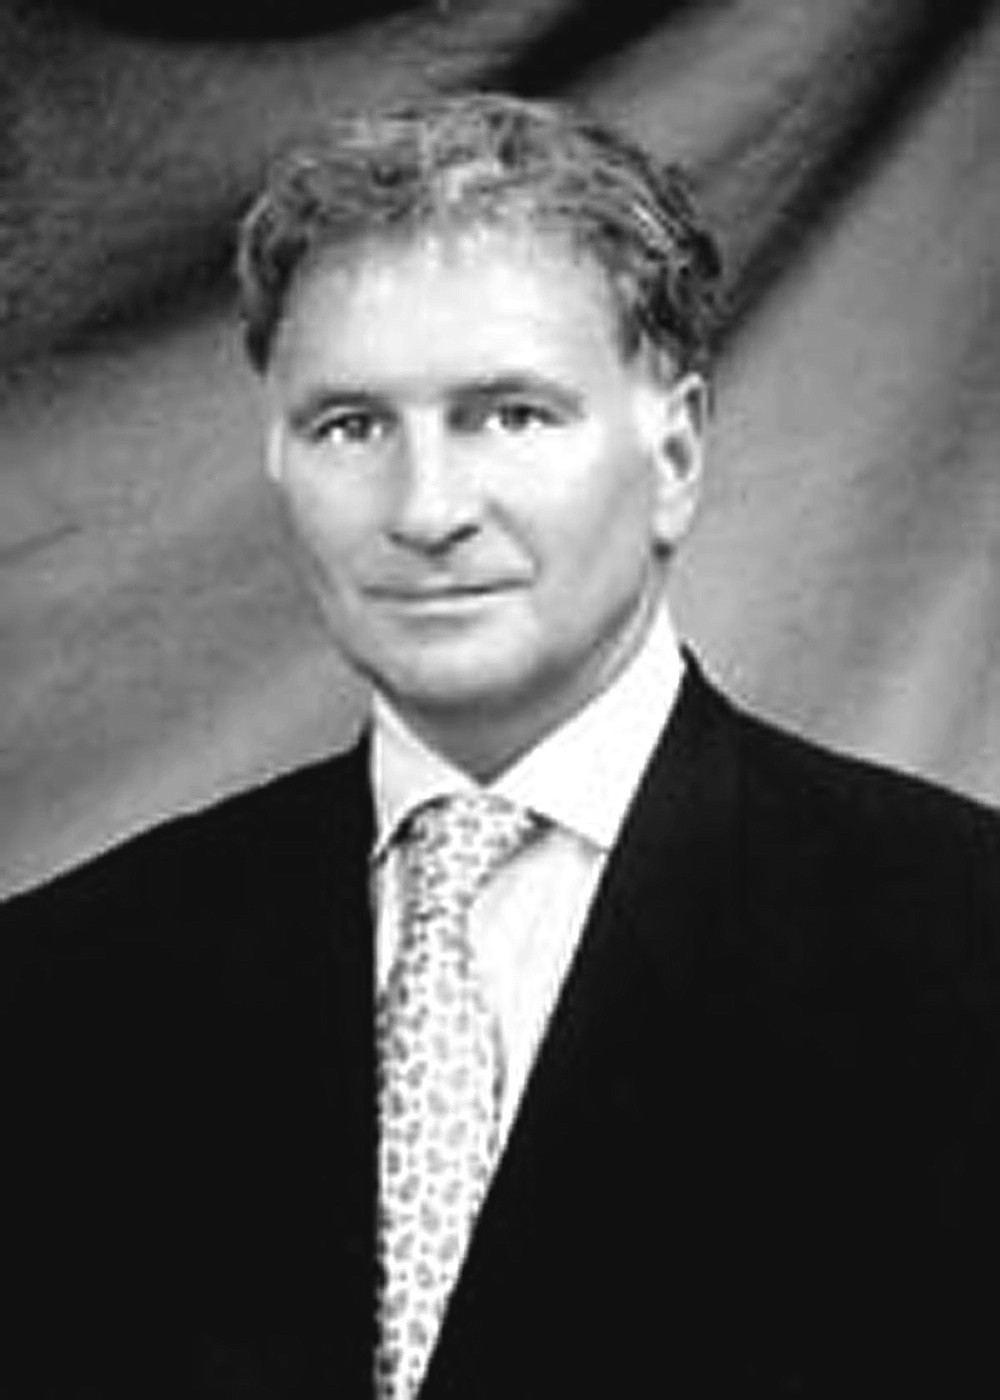 Duane Roth spent ten years as product director at Johnson & Johnson and became CEO of Alliance Pharmaceutical in 1985.